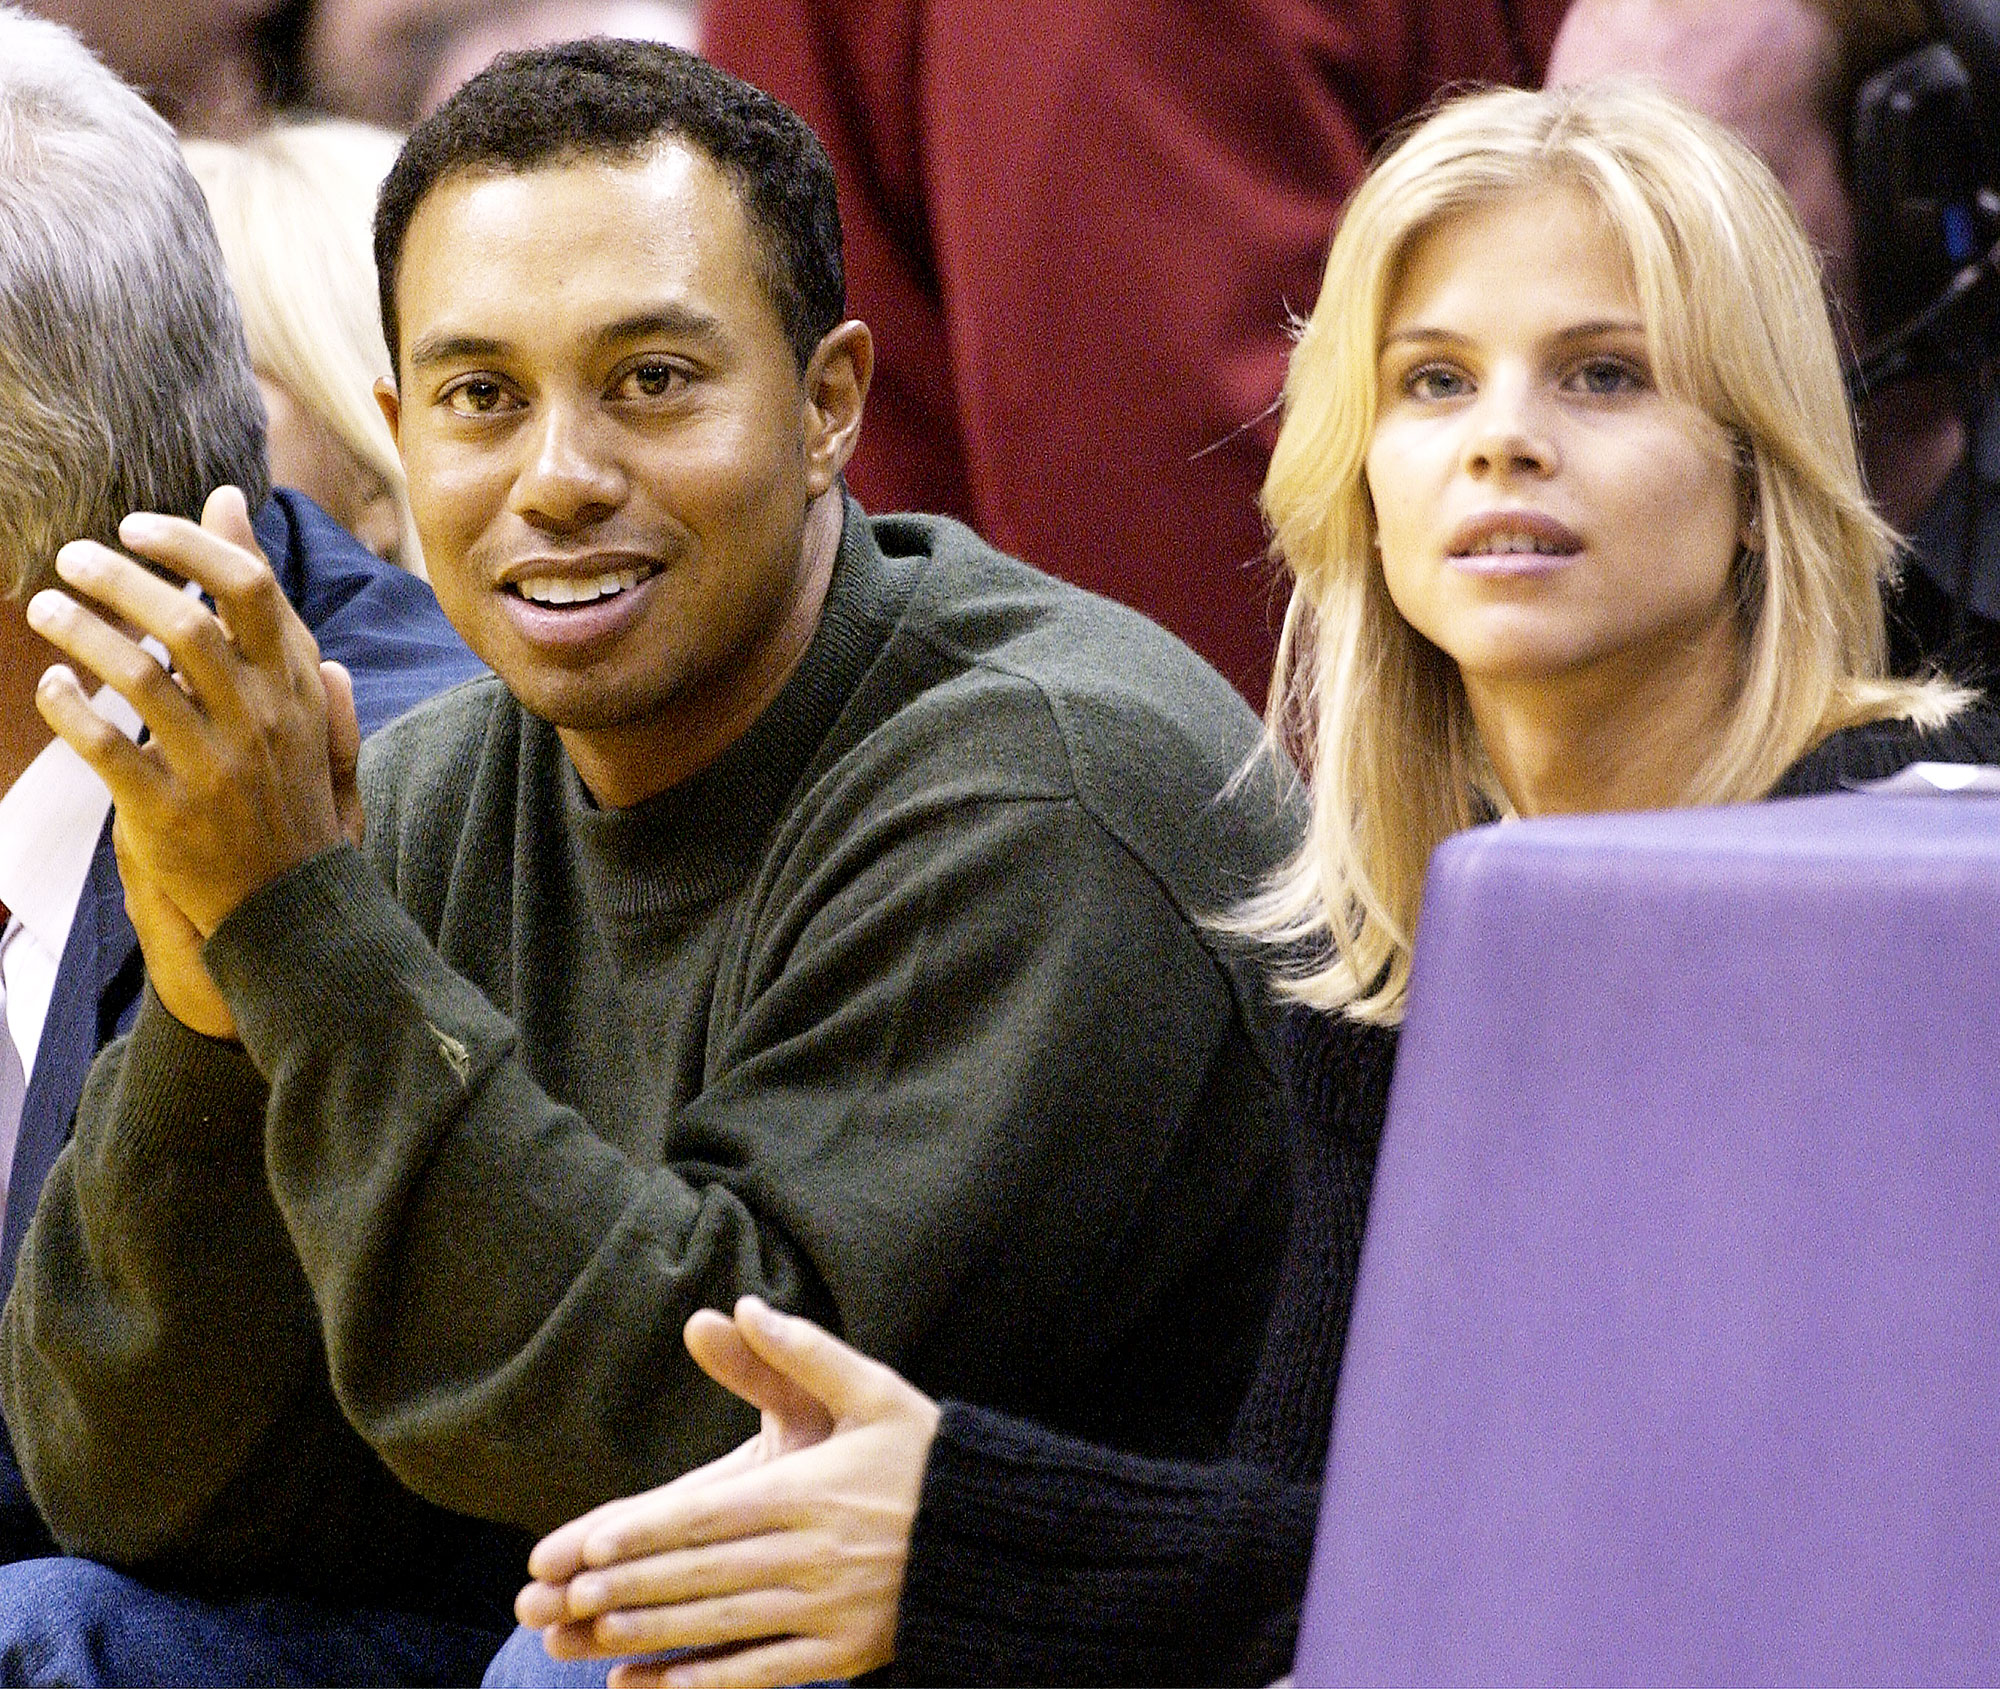 Tiger Woods and Elin Nordegren at Los Angeles Lakers Game in 2003